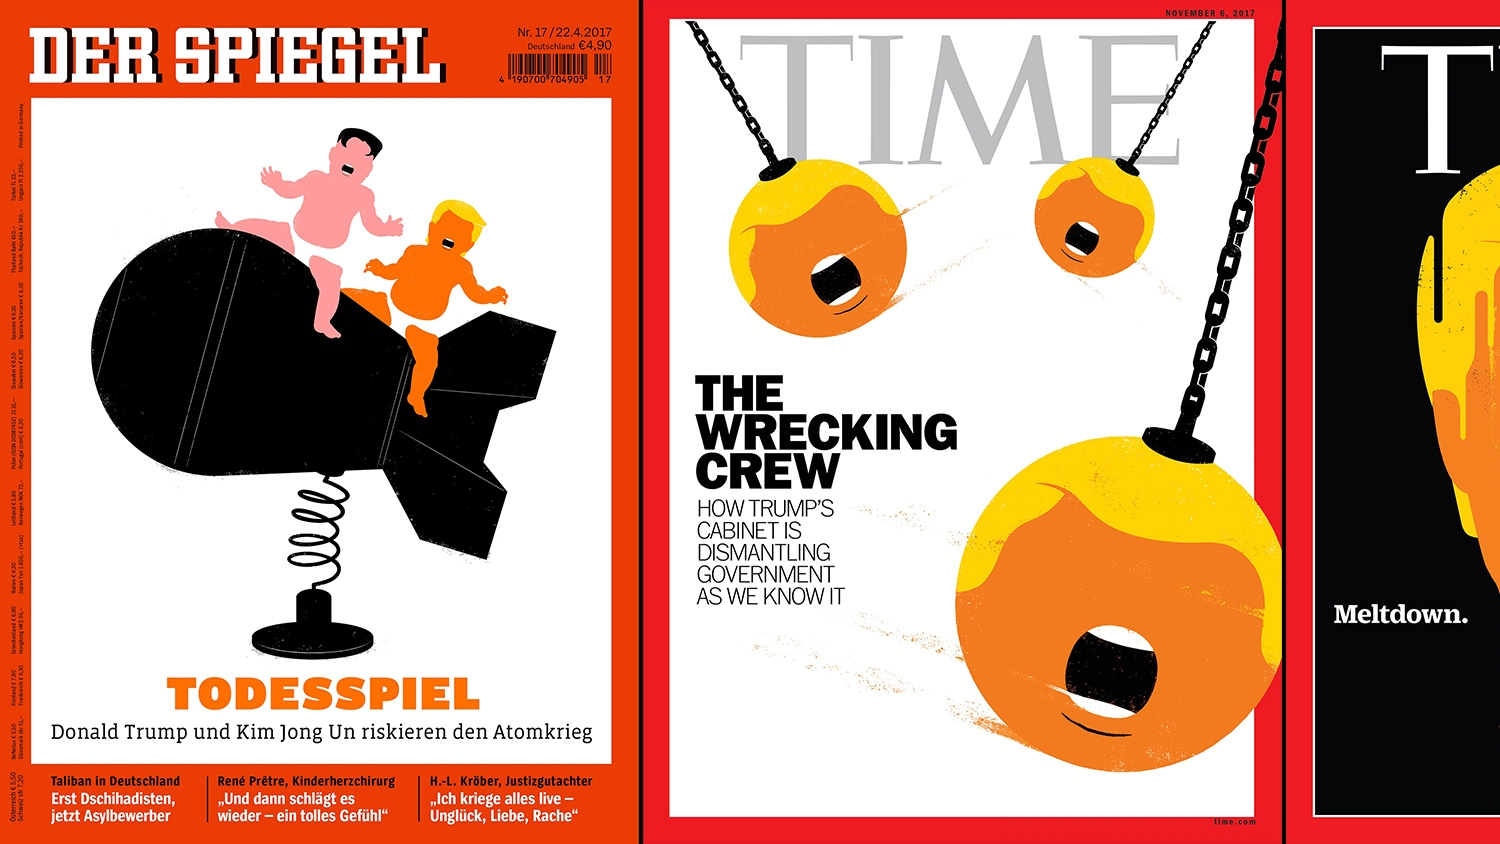 Design Spiegel The Illustrator Of Famous Donald Trump Der Spiegel And Time Cover